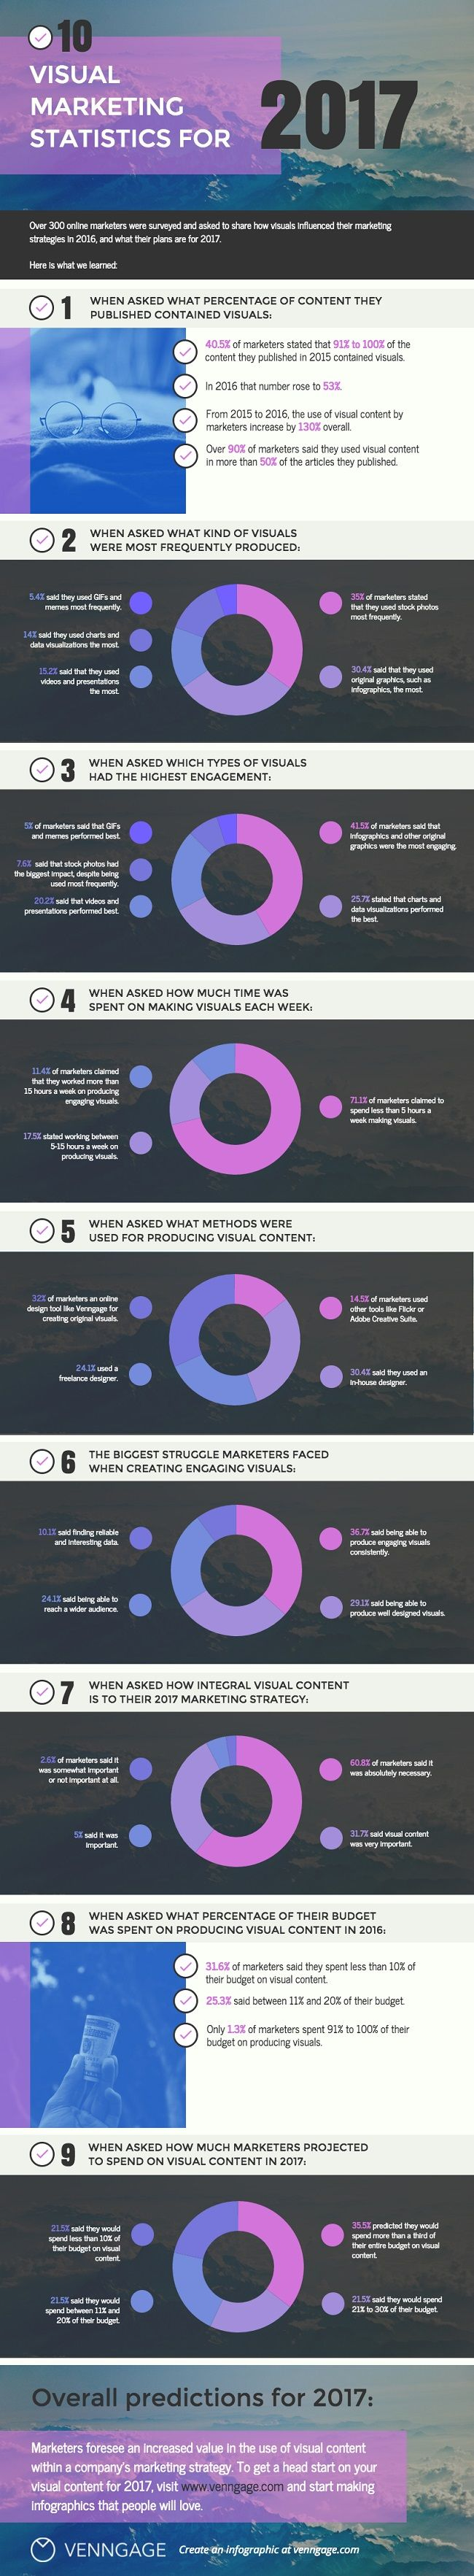 A recent survey reveals how marketers are using visual media and the challenges they face.